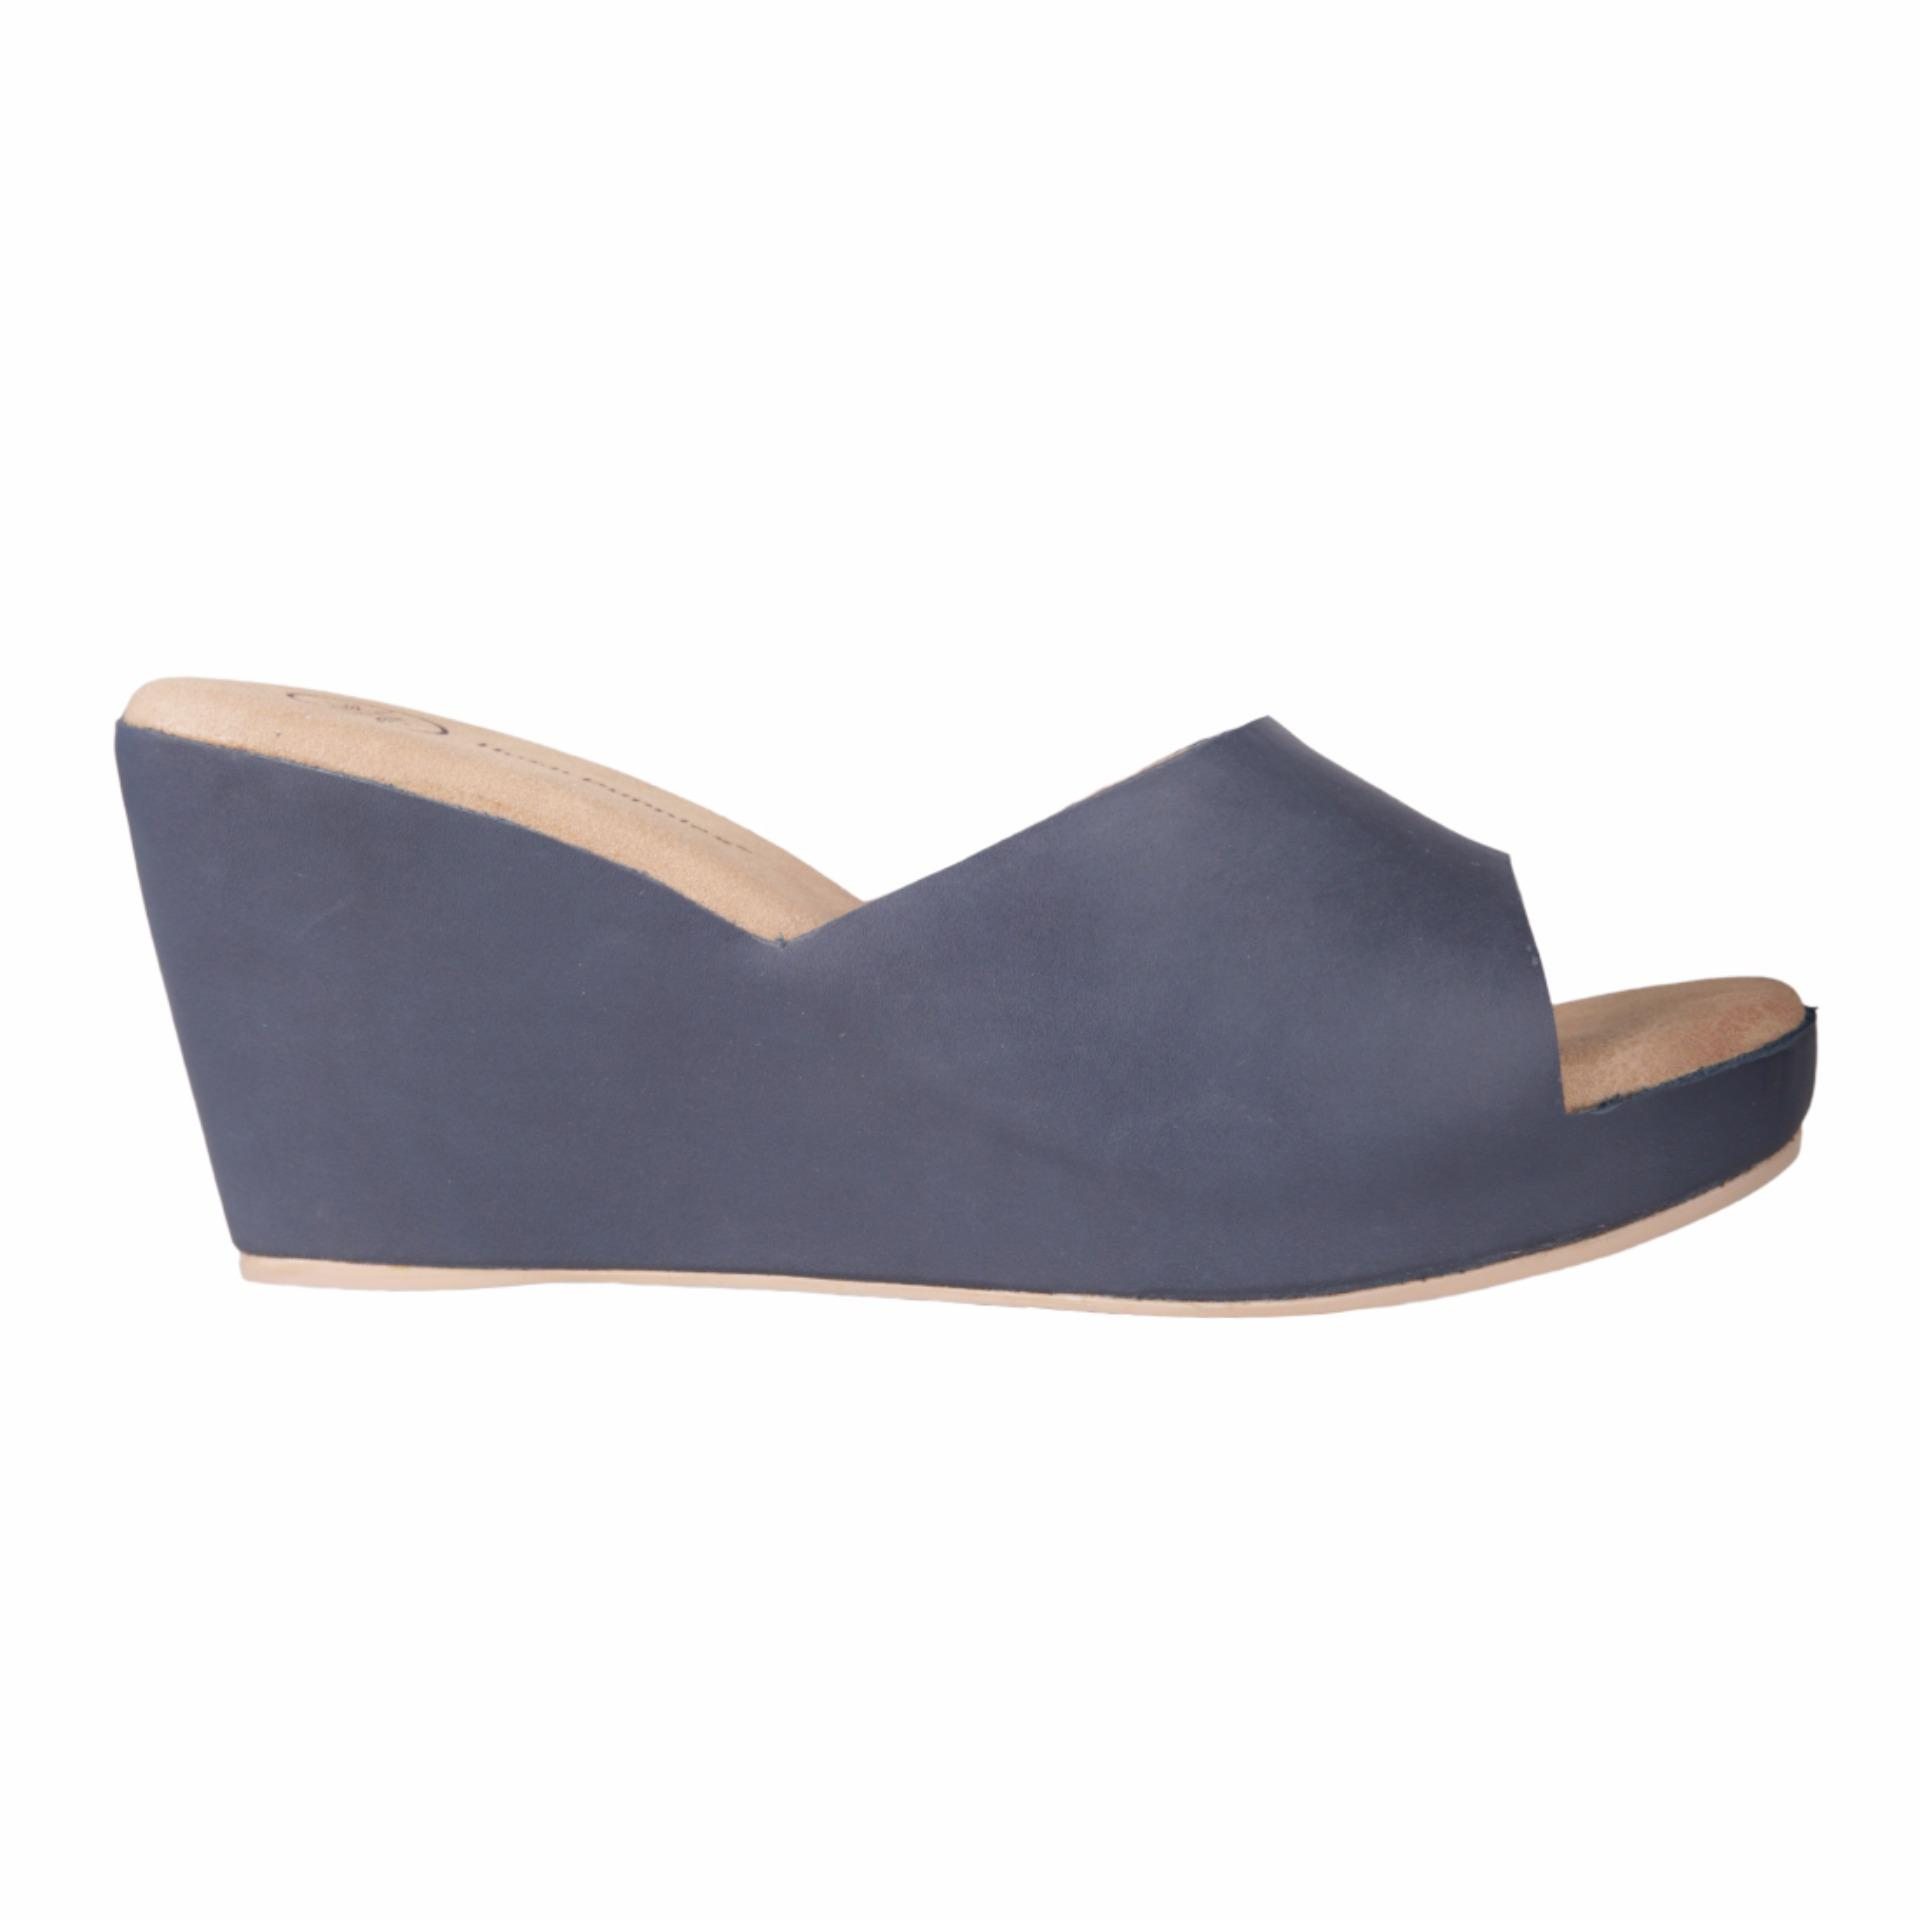 Hush Puppies Sandal Wanita Gracia Slip On